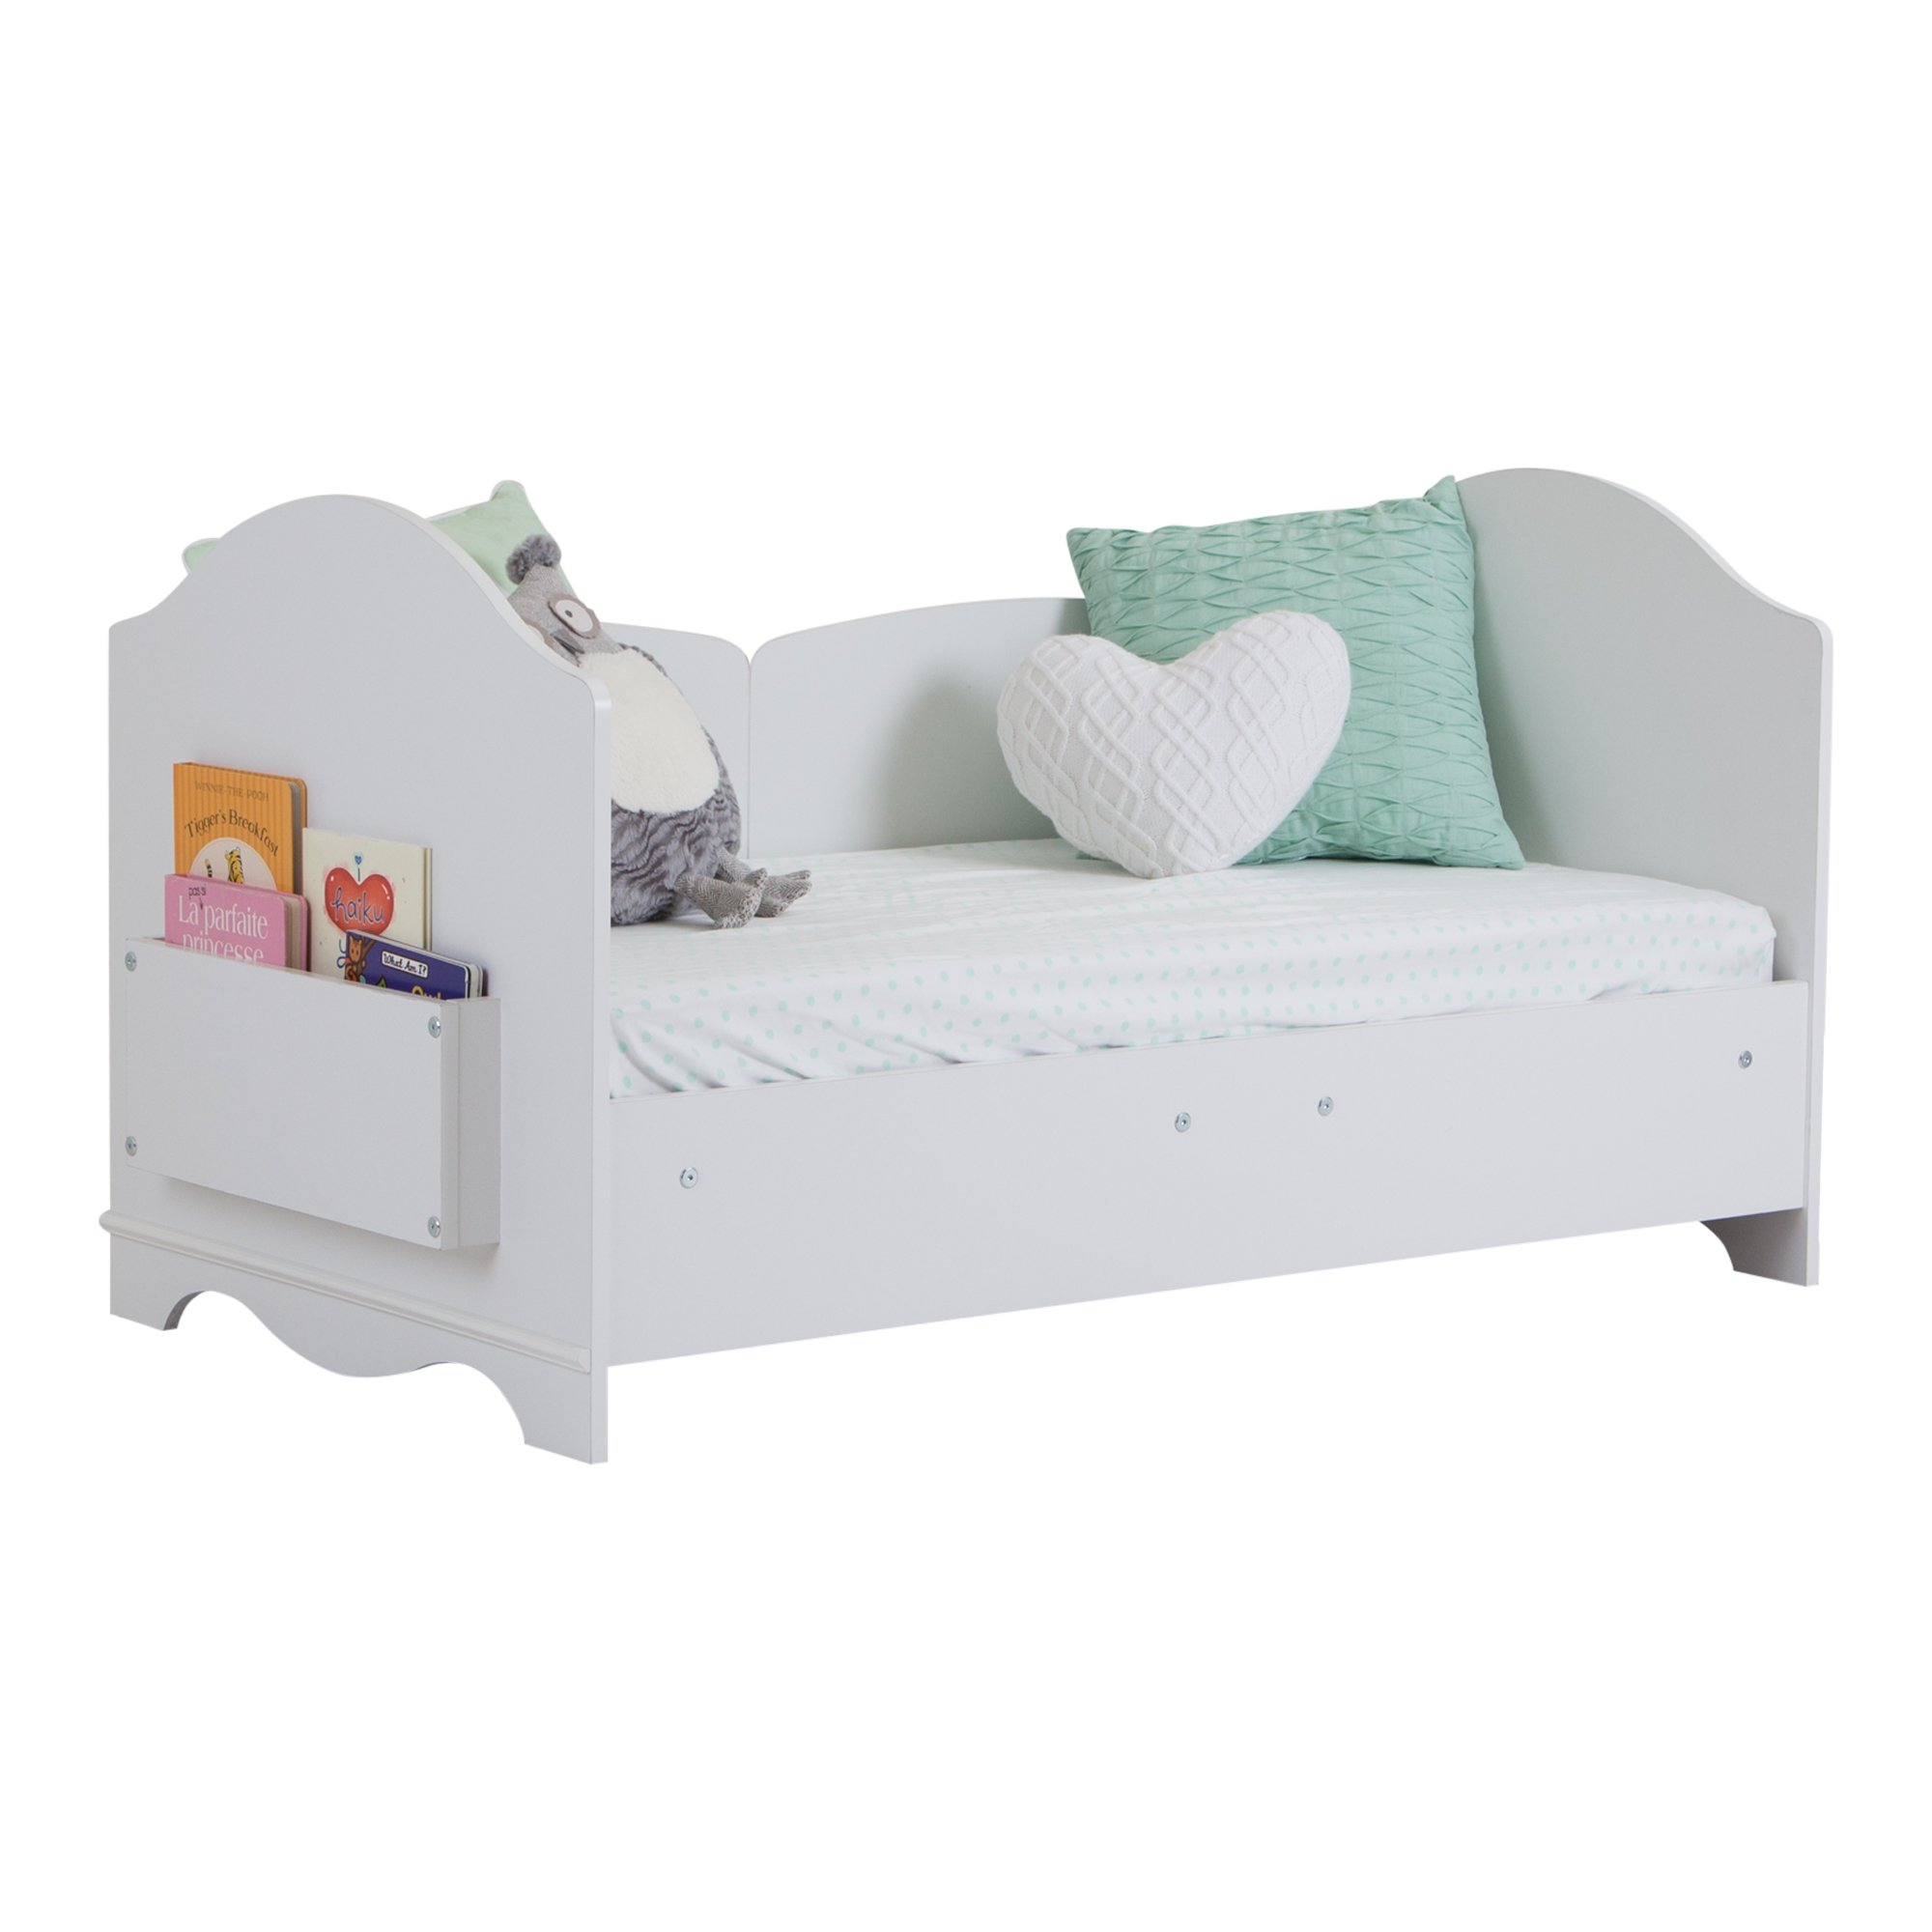 South Shore Savannah Toddler Bed, Pure White